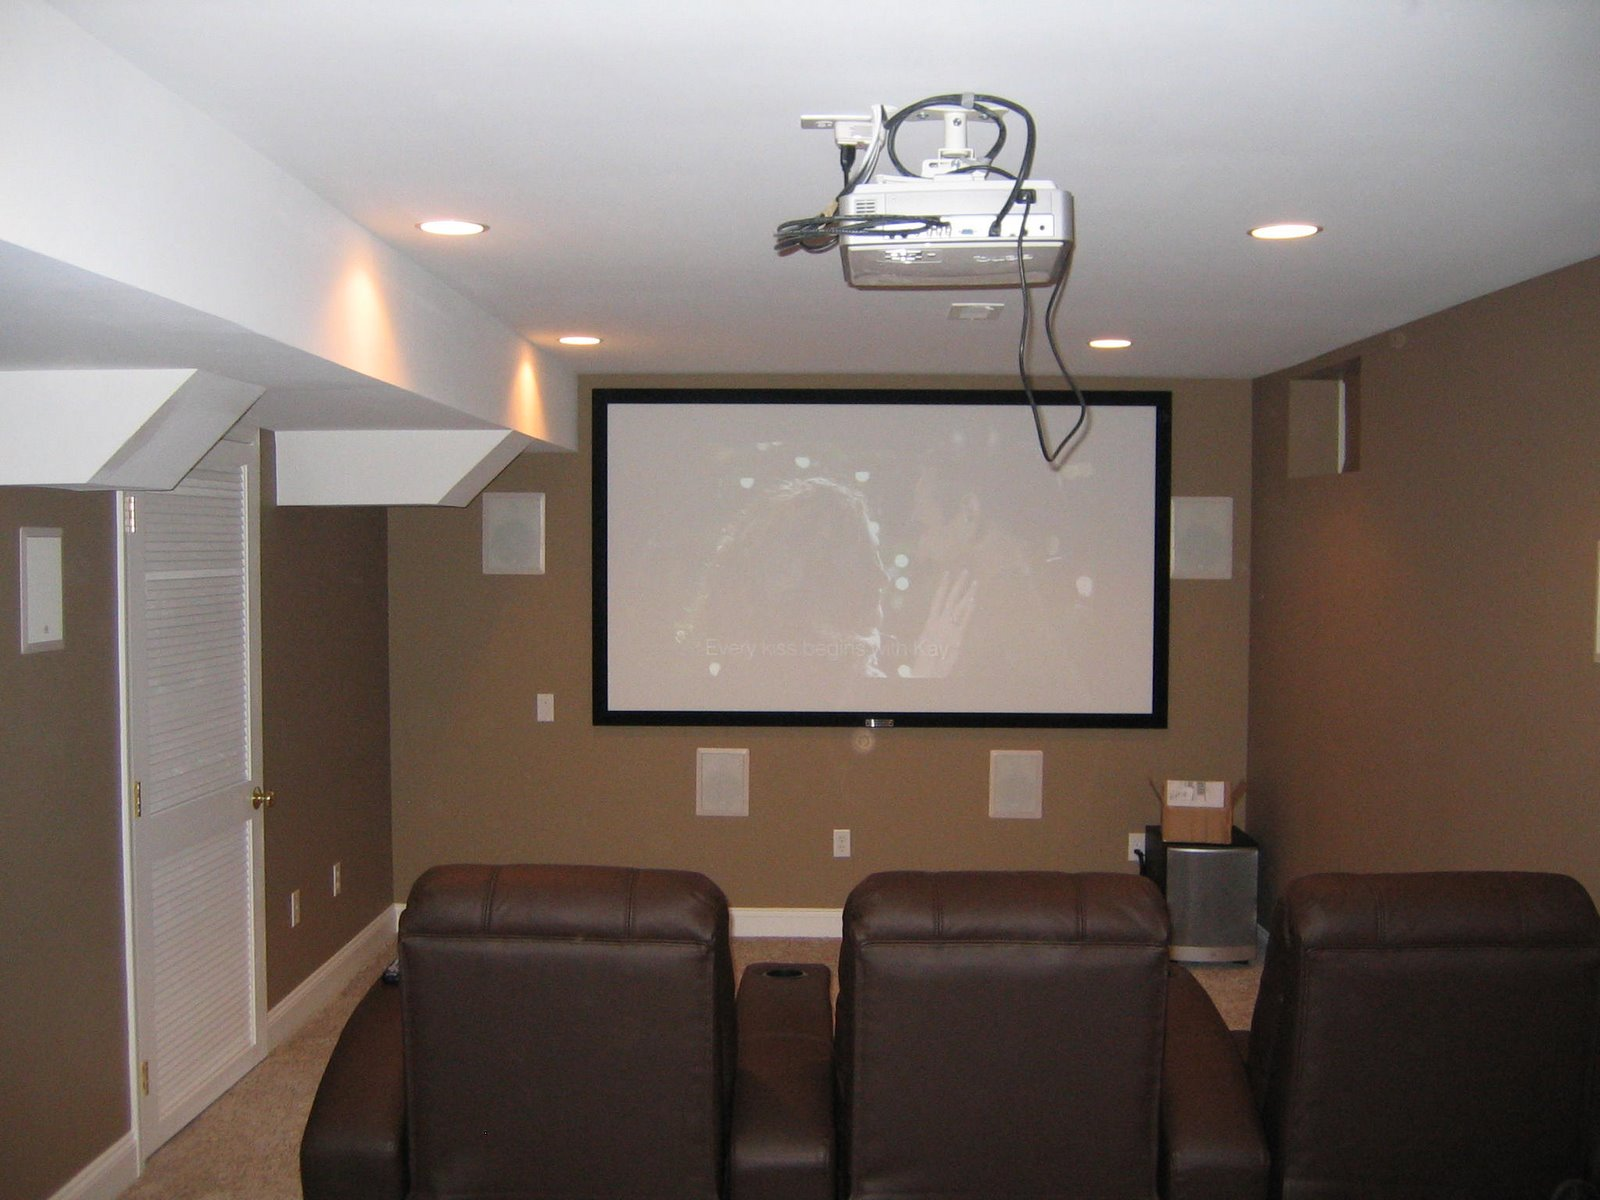 Home theater setup design and ideas for Home theater setup ideas